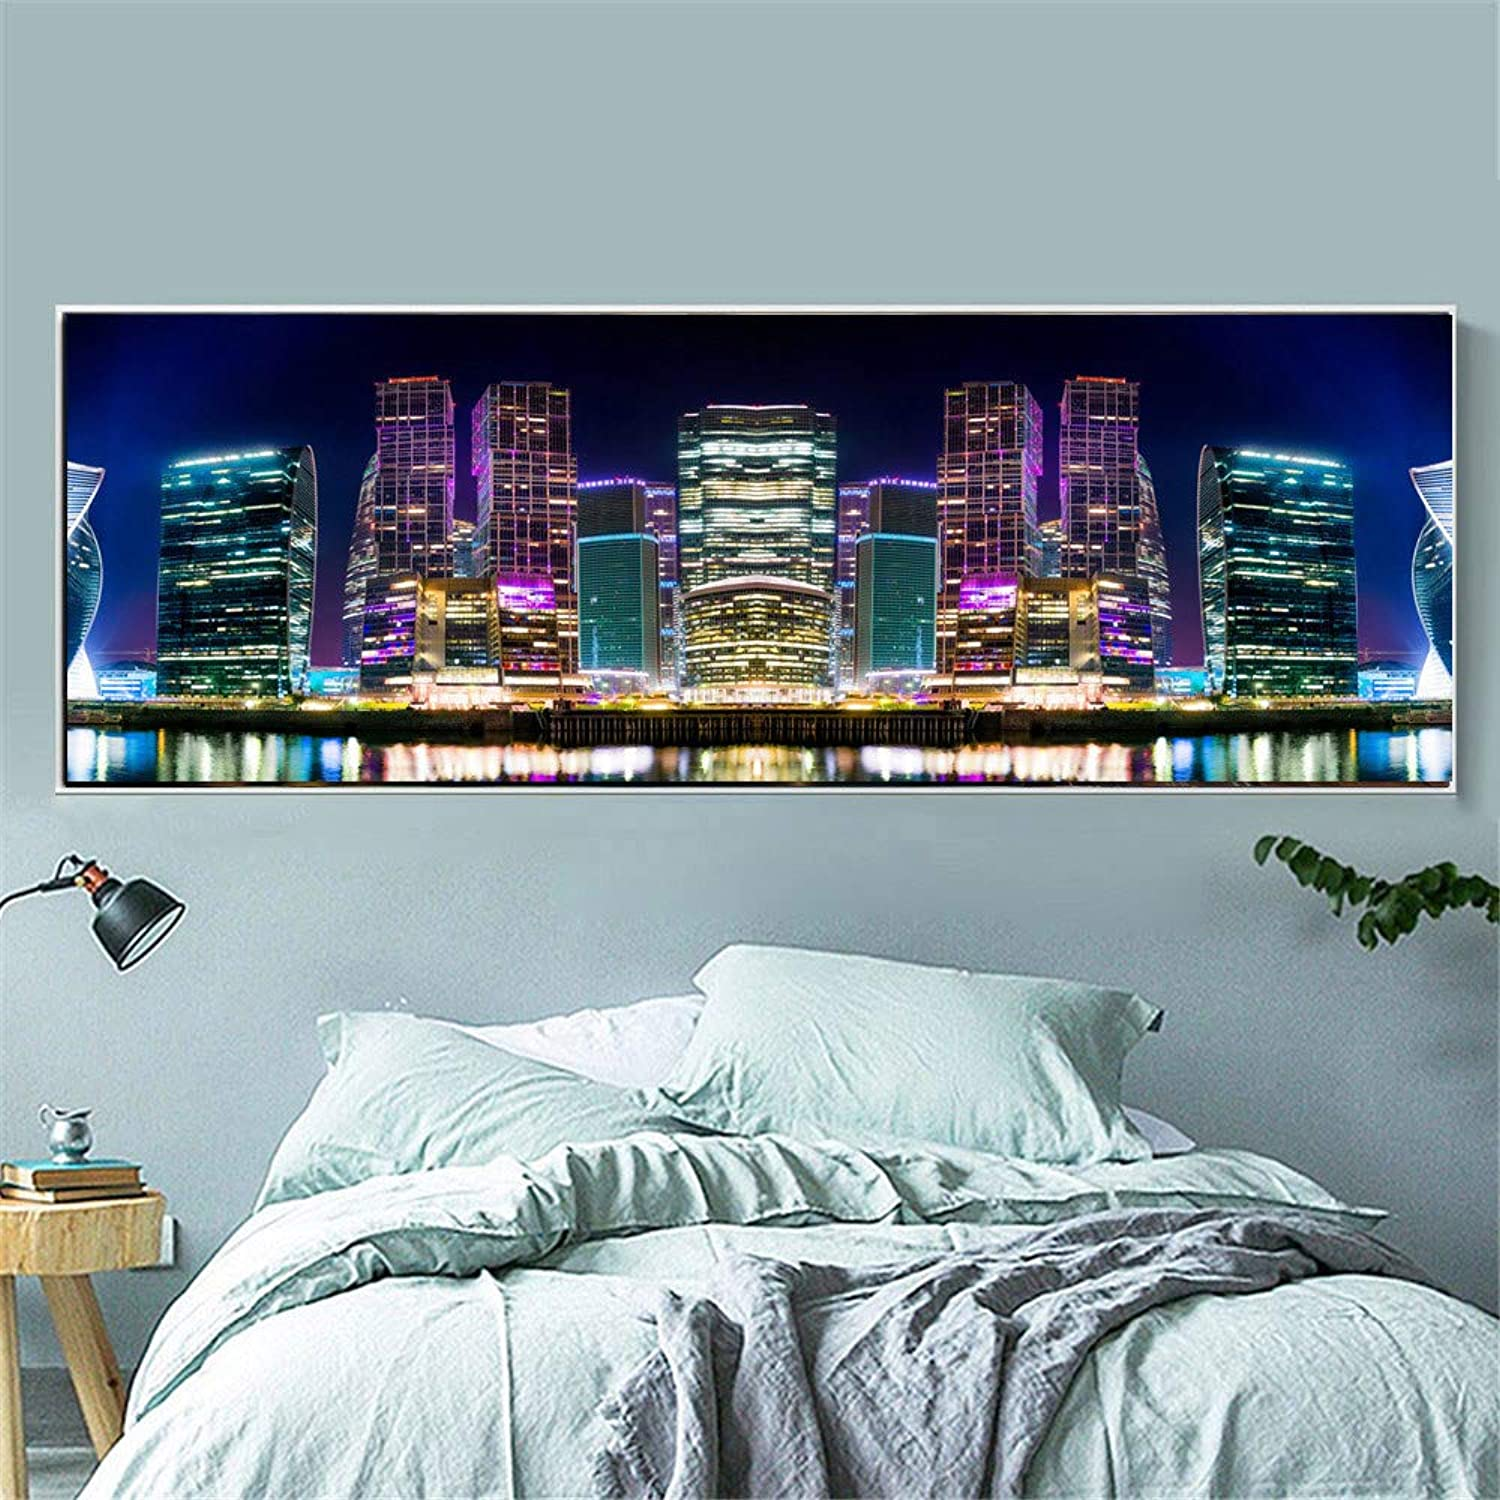 Large Full Drill 5D DIY Diamond Painting Russia City Night View Embroidery Mosaic Picture by Numbers,50X150cm